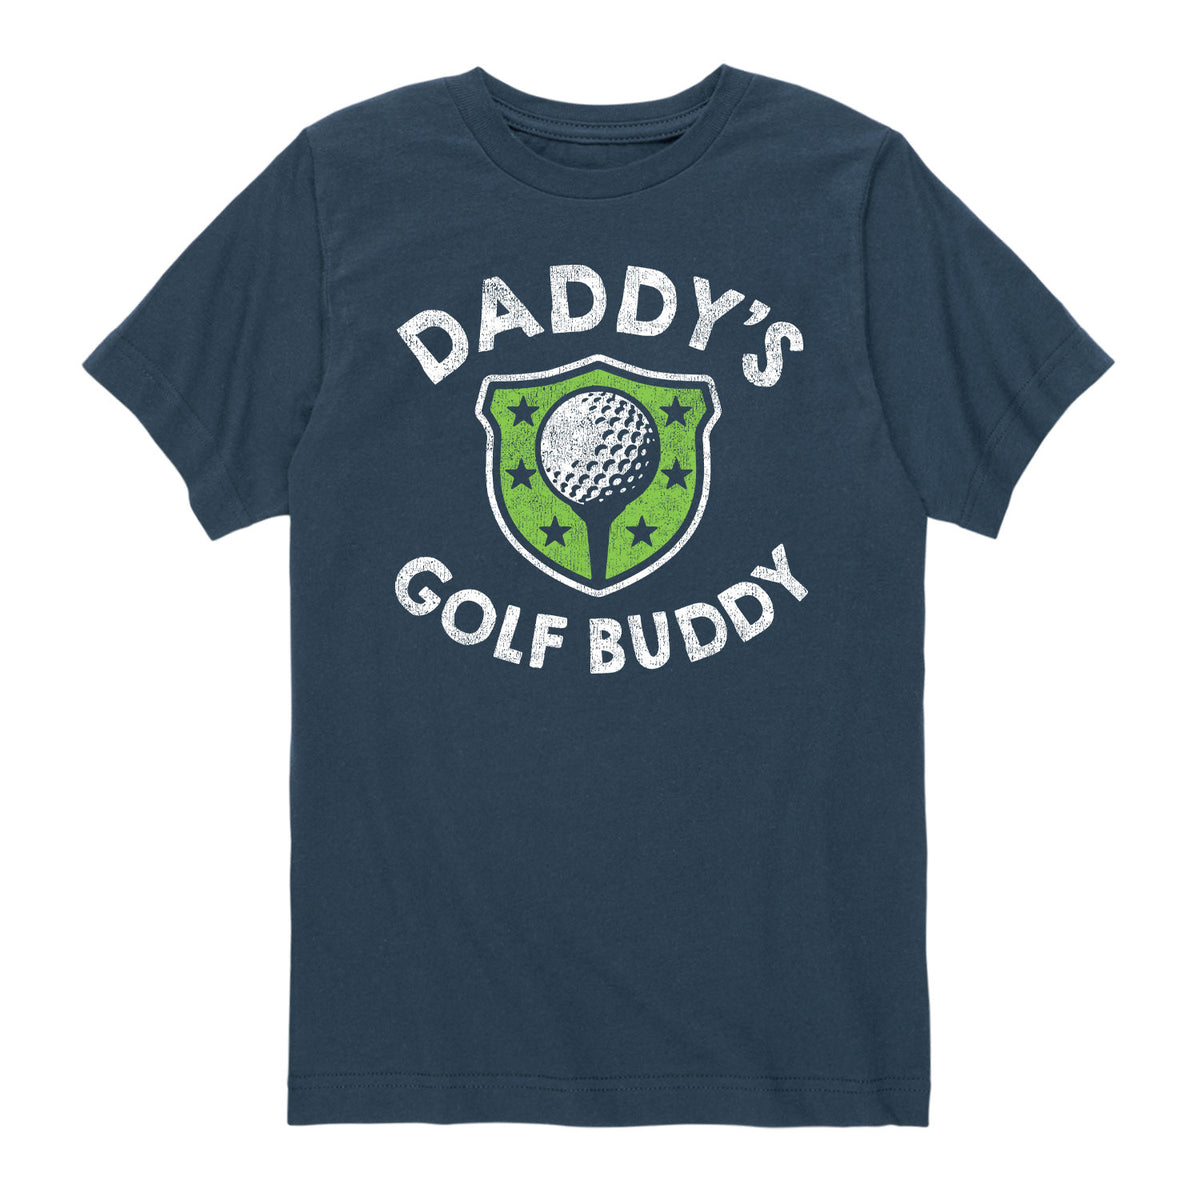 Daddy's Golf Buddy - Youth & Toddler Short Sleeve T-Shirt